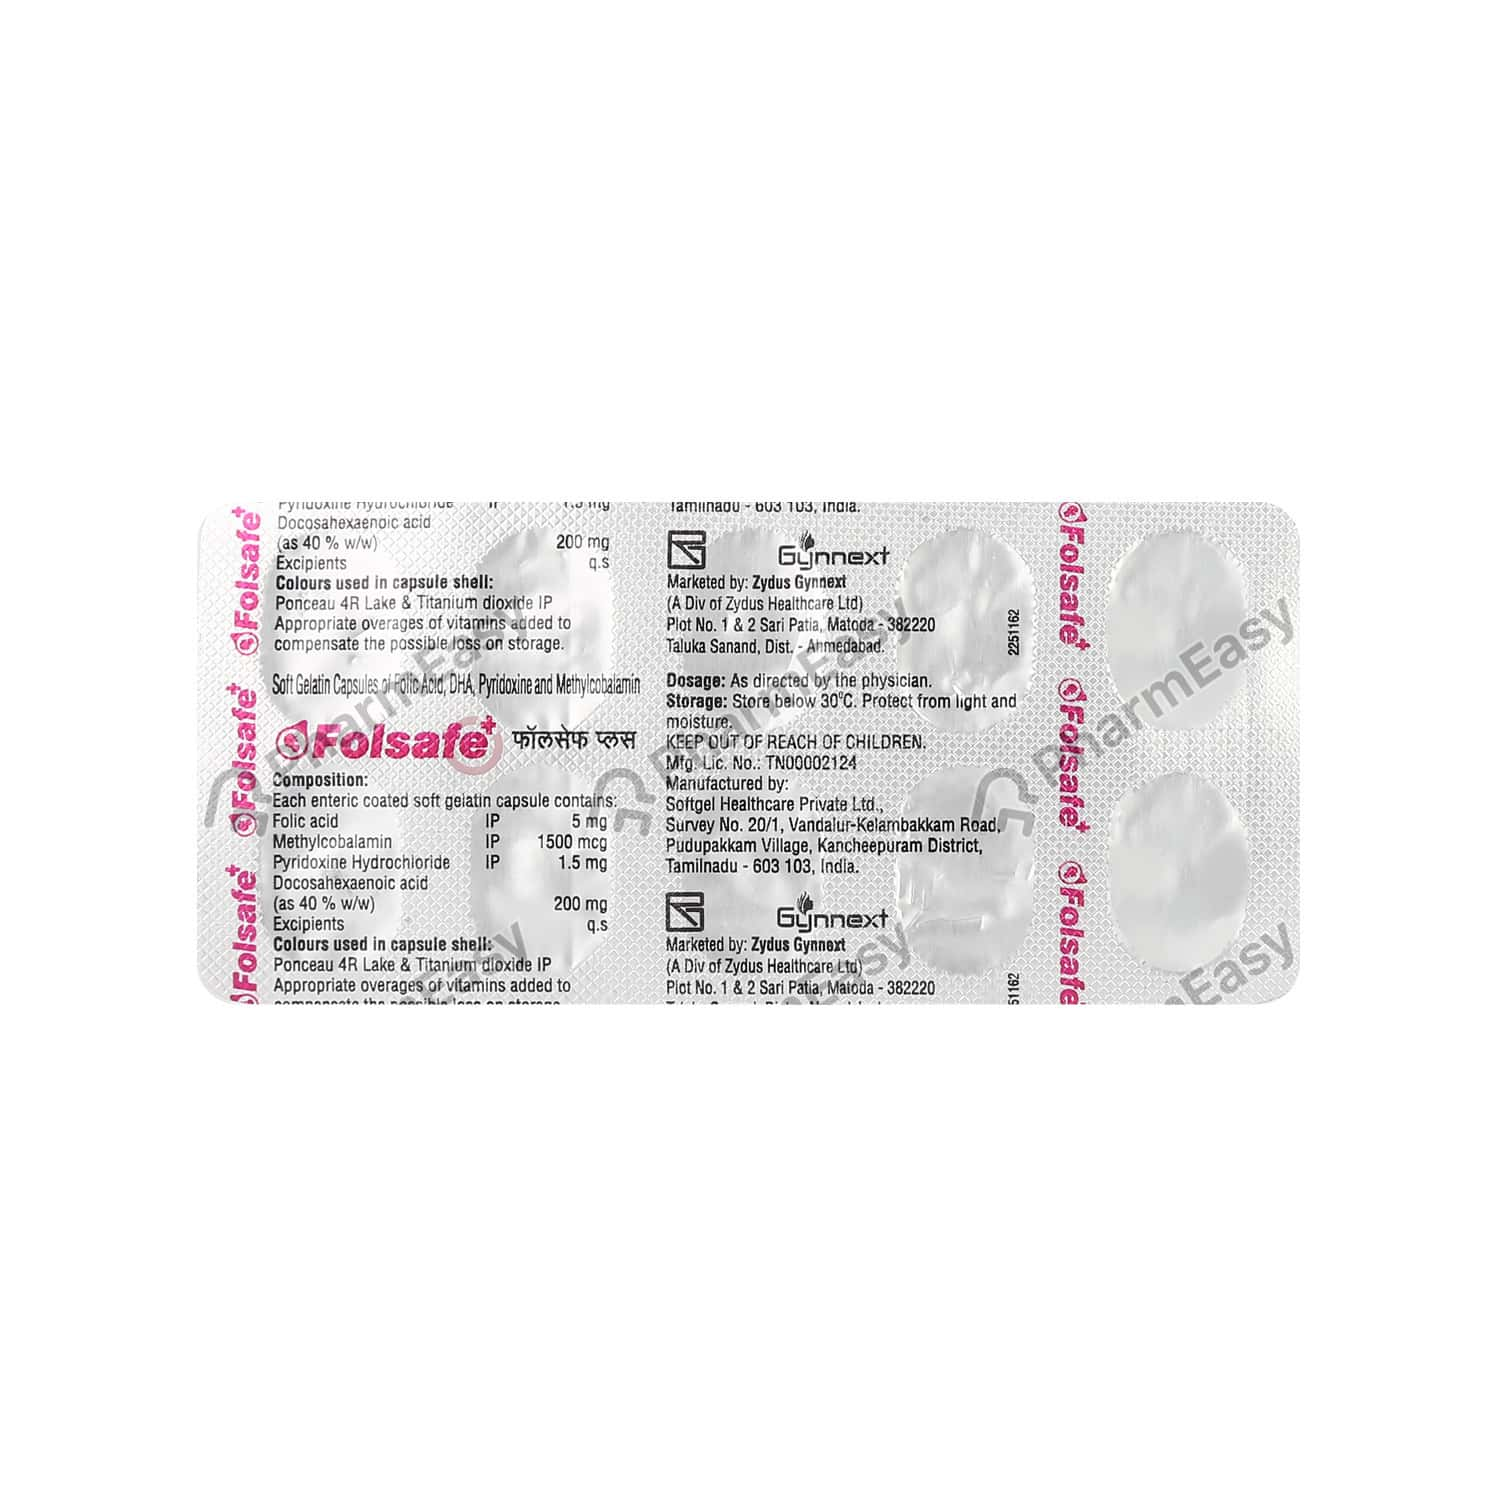 Folsafe Plus Capsule